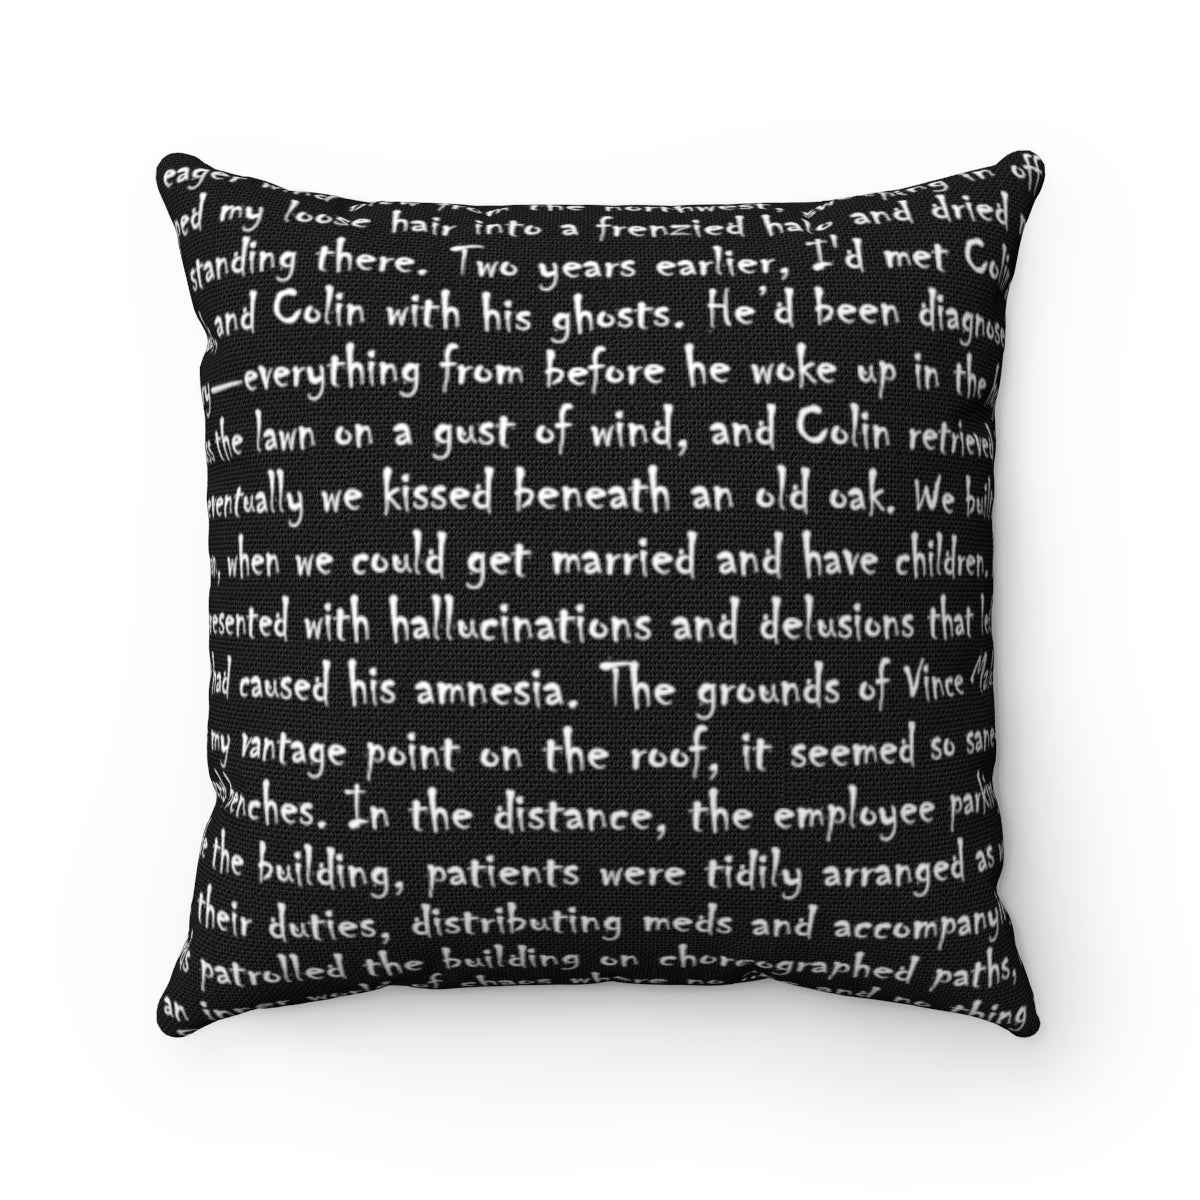 Your Words on a Pillow Cover (personalized)